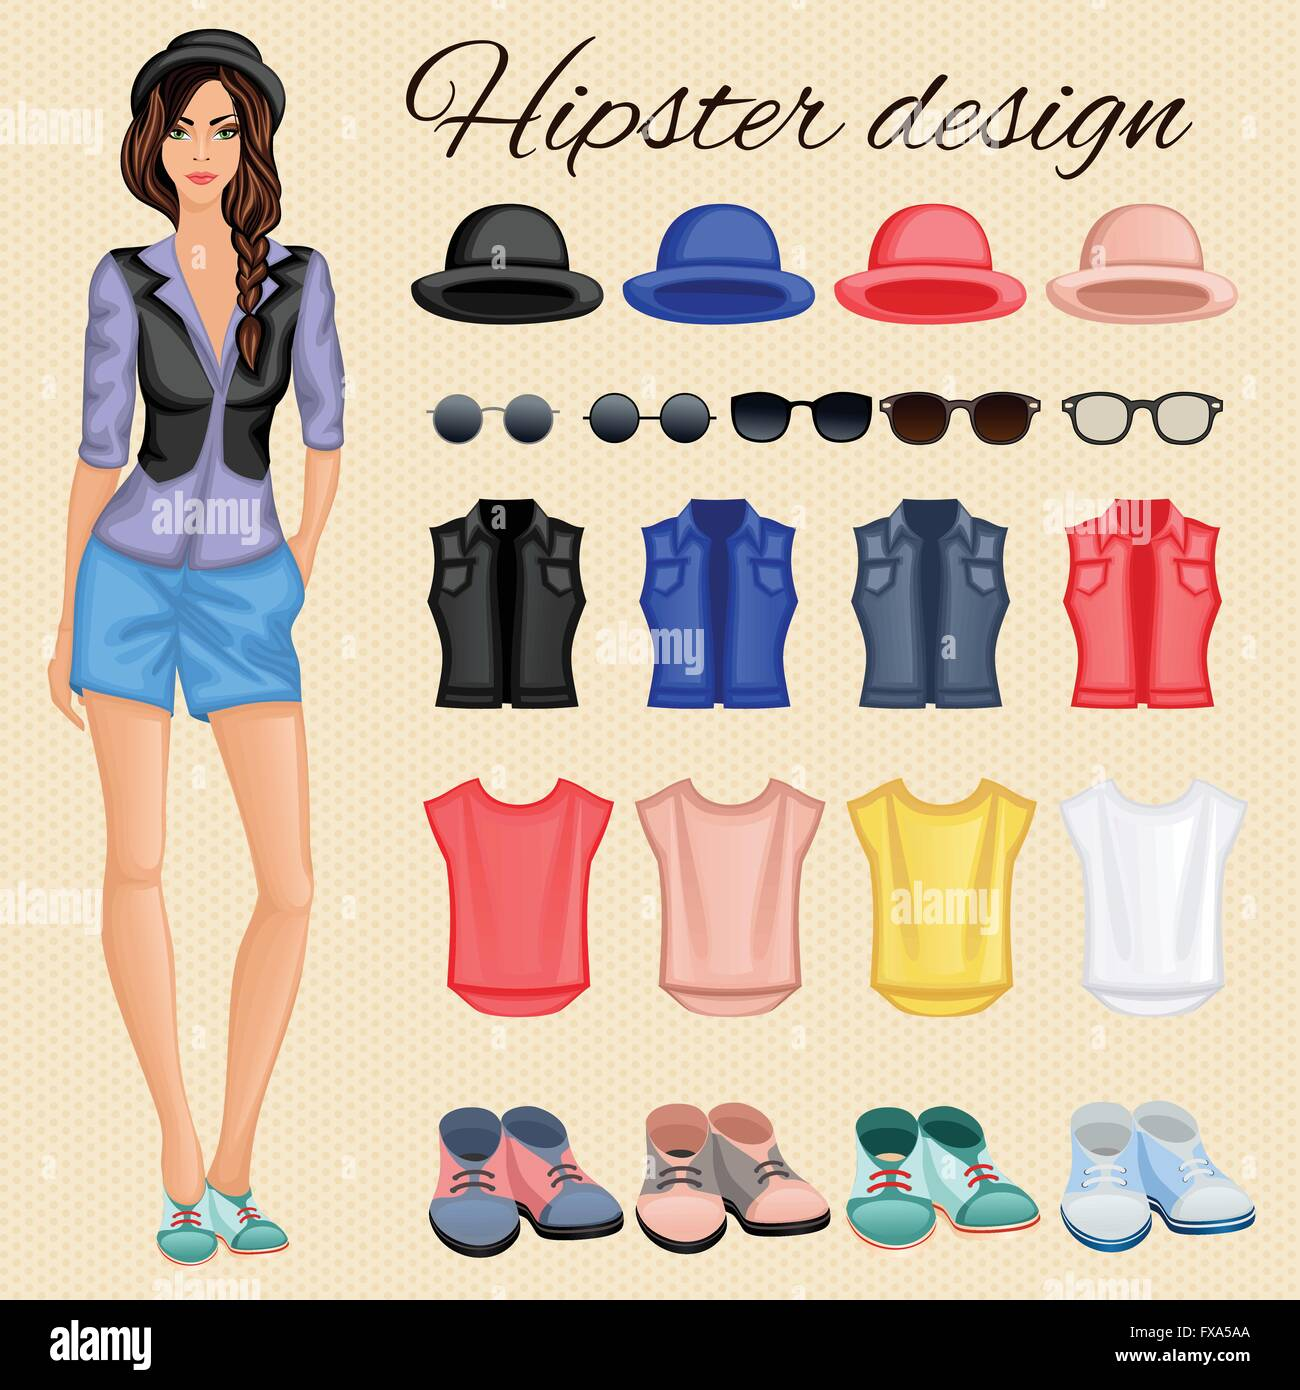 Hipster girl elements - Stock Vector